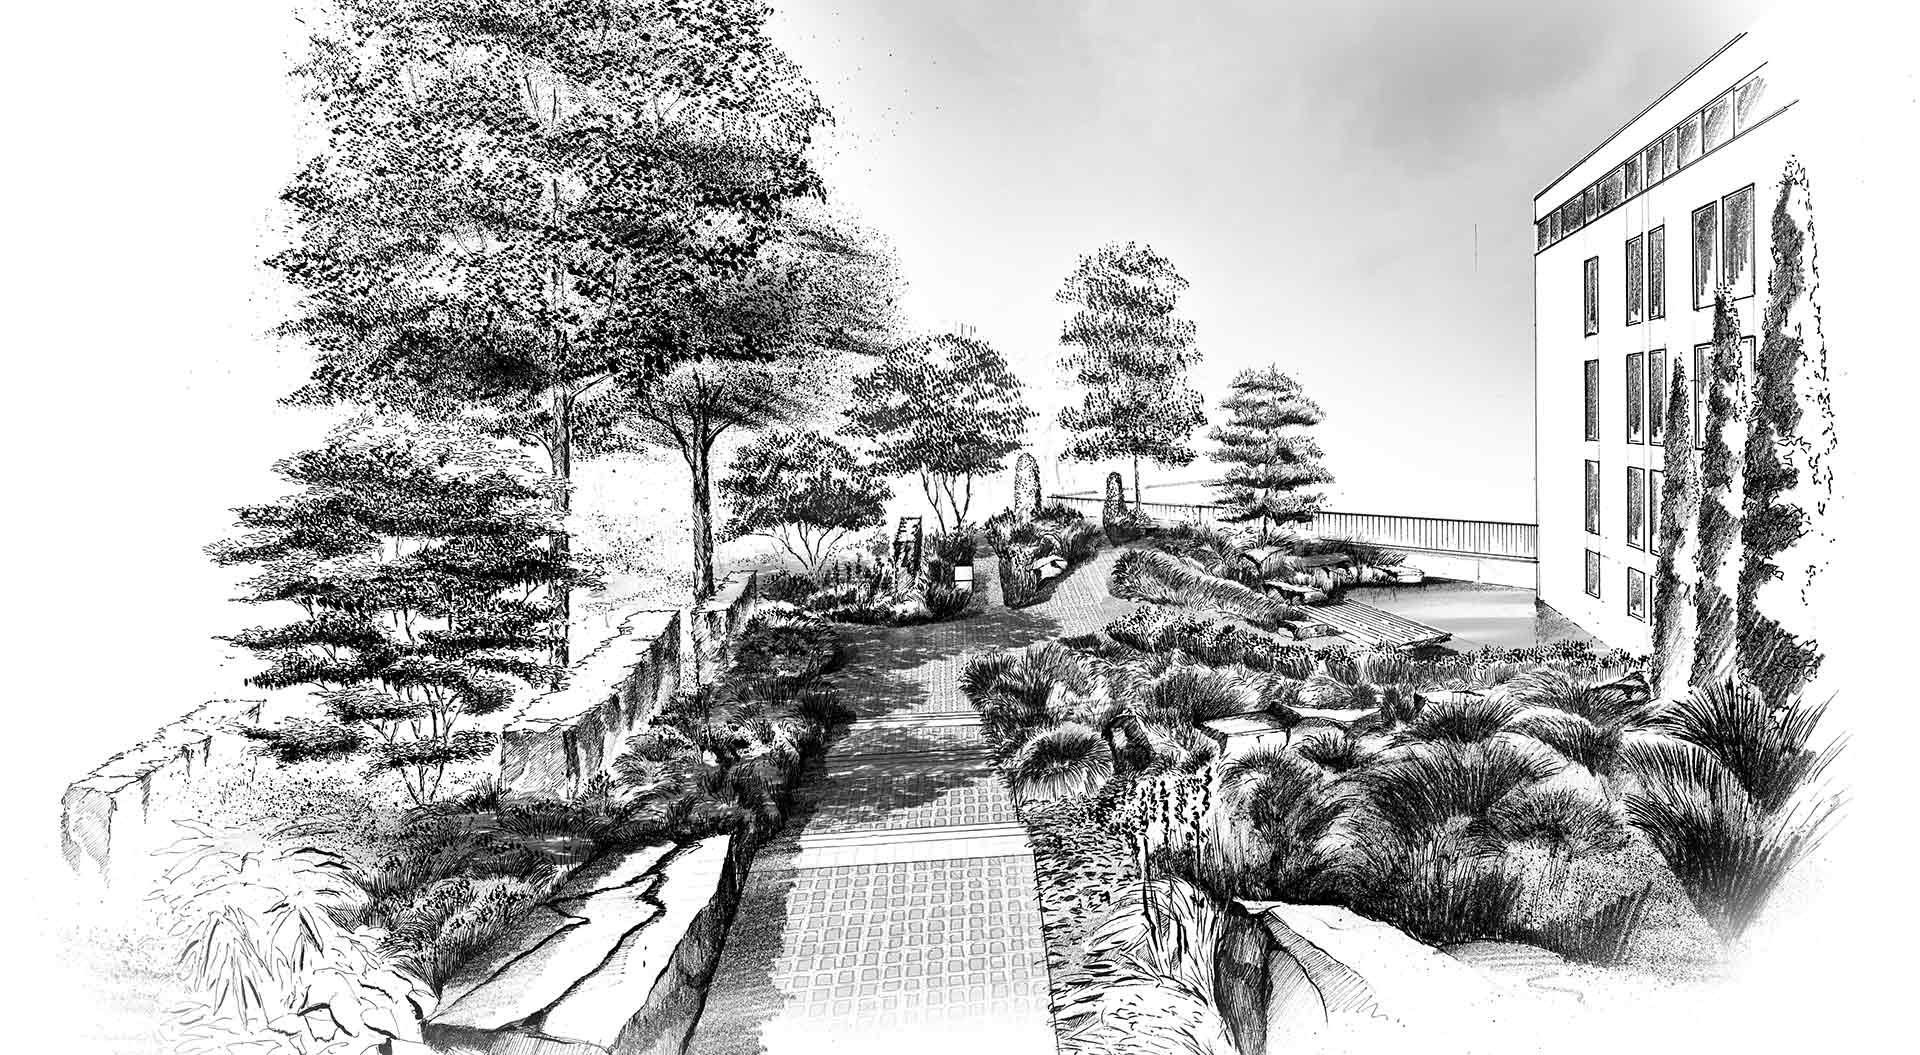 Sketch of a big company garden with paths and plants